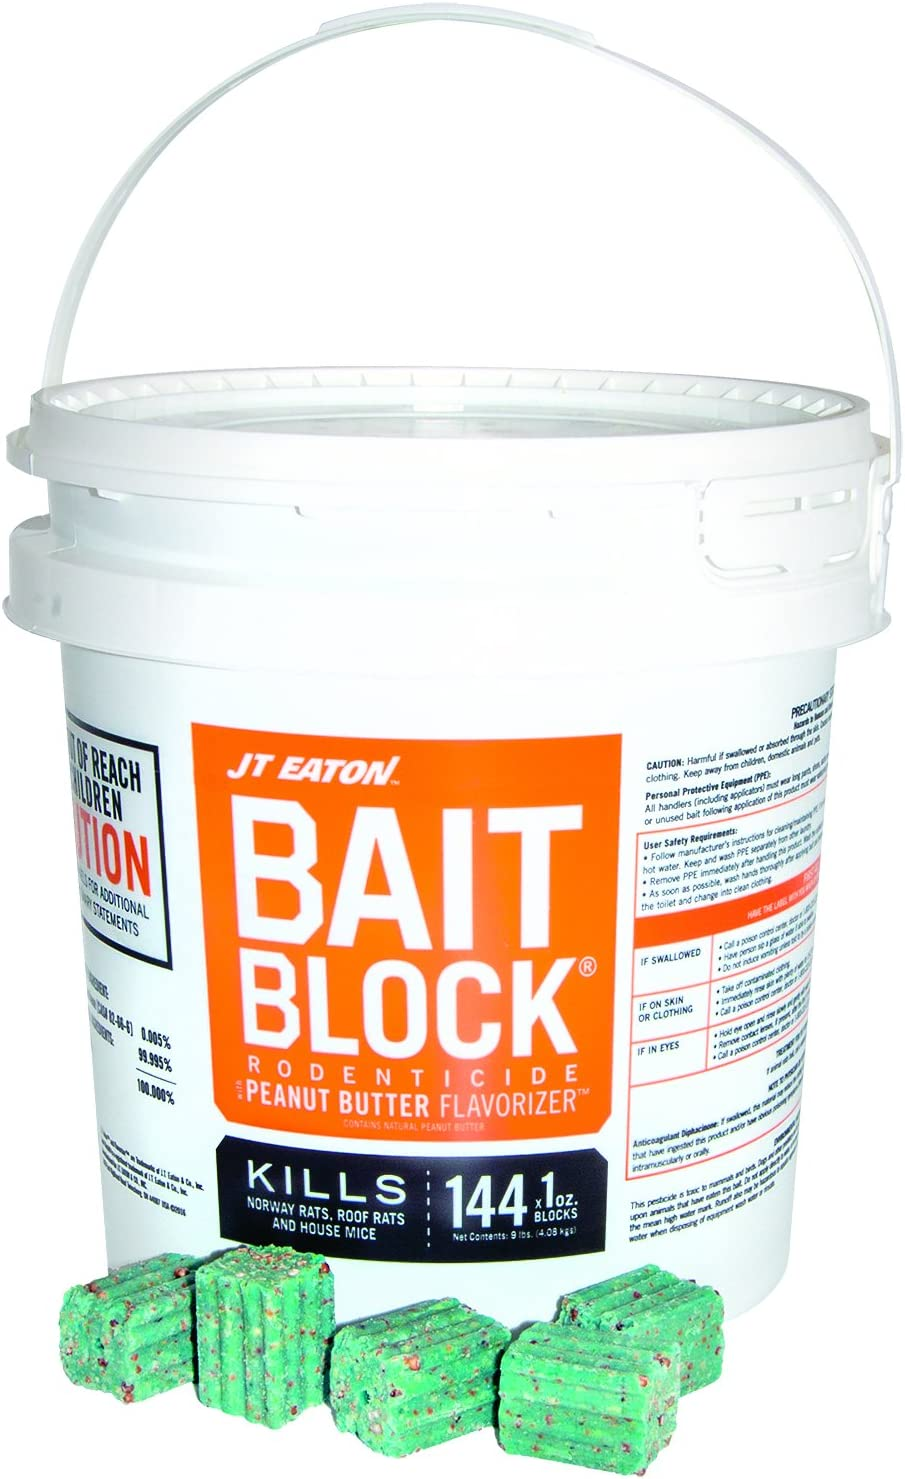 JT Eaton Bait Block Rat Poison Anticoagulant Bait